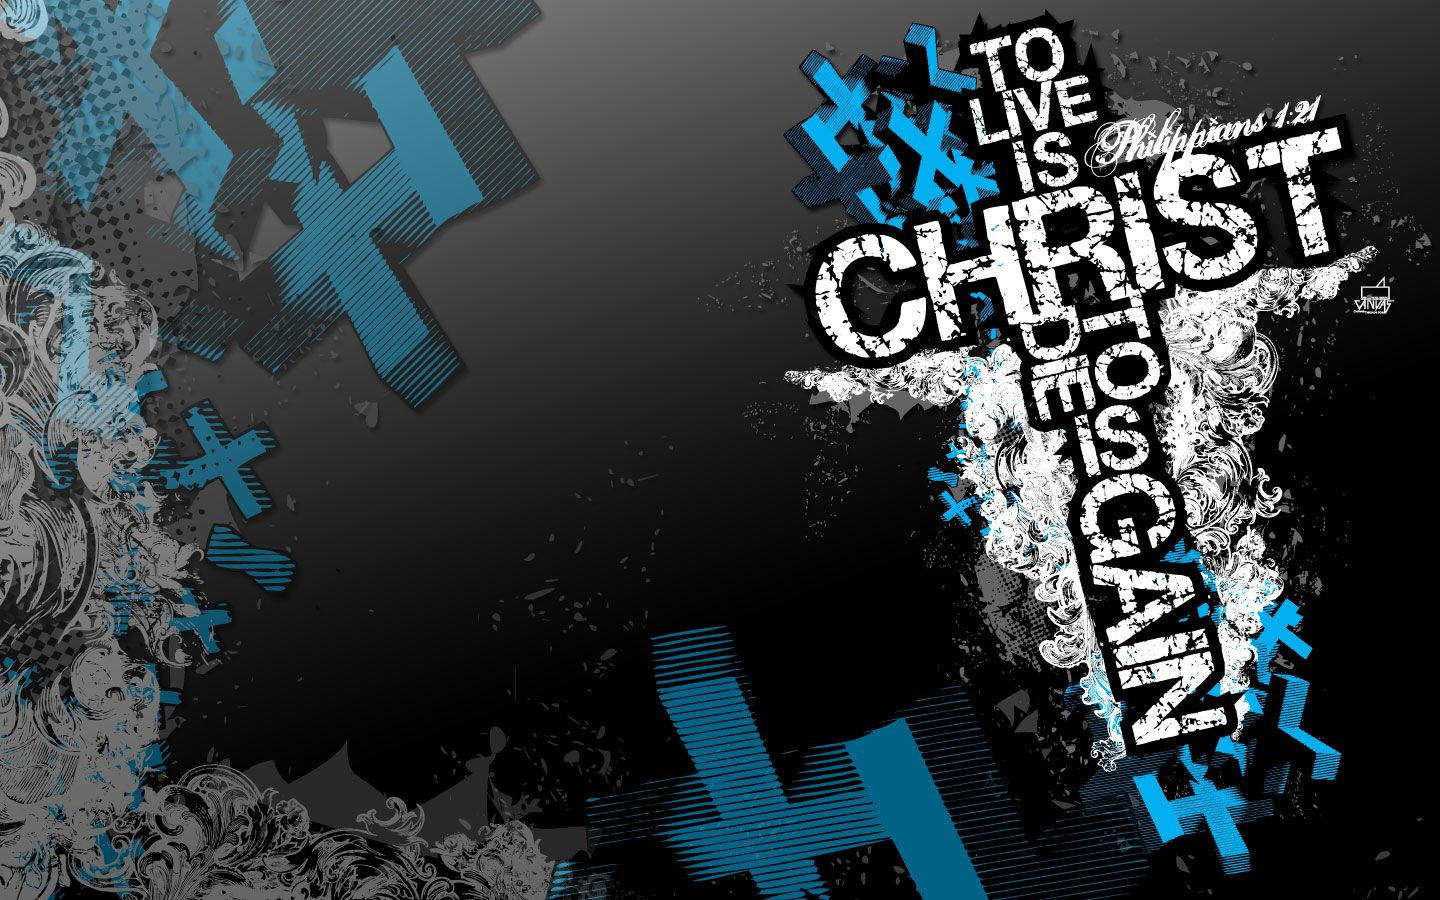 Christian laptop wallpapers top free christian laptop backgrounds wallpaperaccess - Full hd christian wallpaper ...